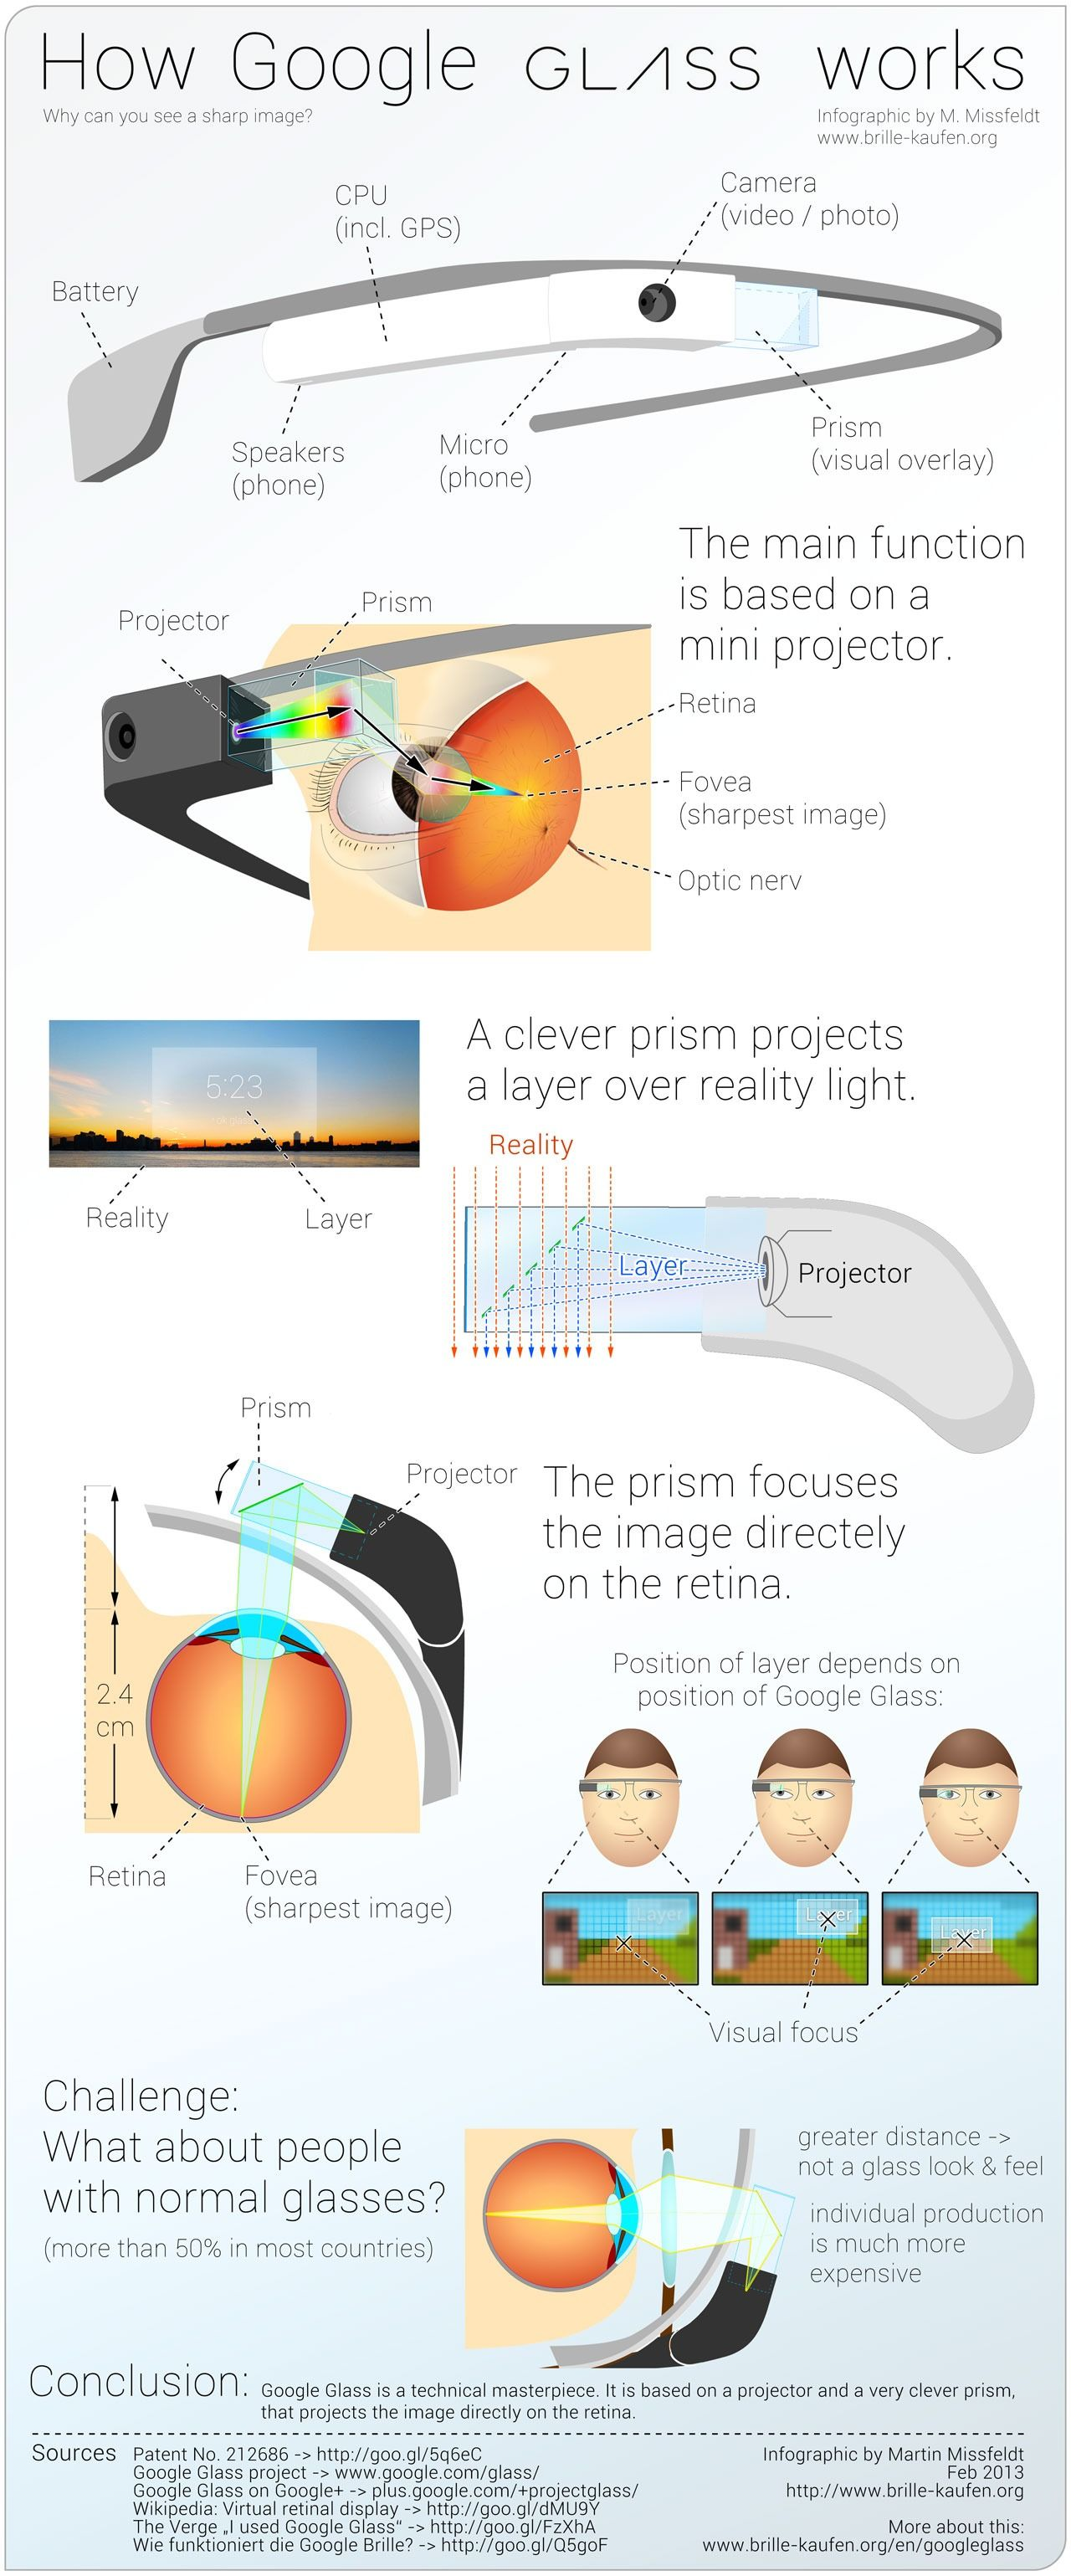 This is how Google Glass actually works